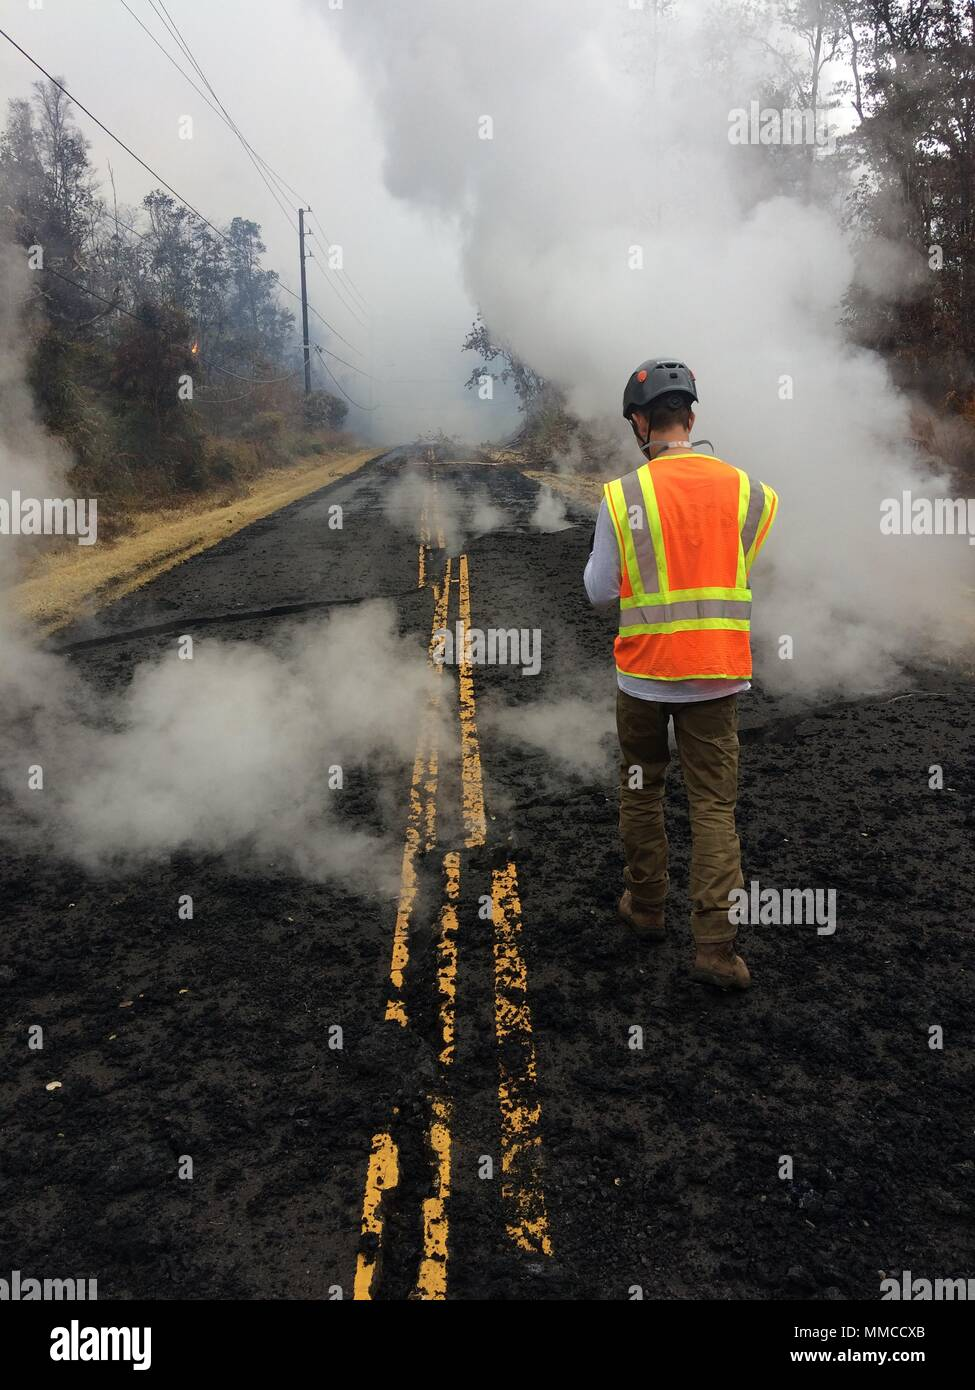 Leilani Estates, Hawaii. May 9, 2018. A U.S. Geologic Survey scientist records ground cracks venting steam along Leilani Street caused by the Kilauea volcano eruption May 9, 2018 in Leilani Estates, Hawaii. The recent eruption continues destroying homes, forcing evacuations and spewing lava and poison gas on the Big Island of Hawaii. Credit: Planetpix/Alamy Live News - Stock Image